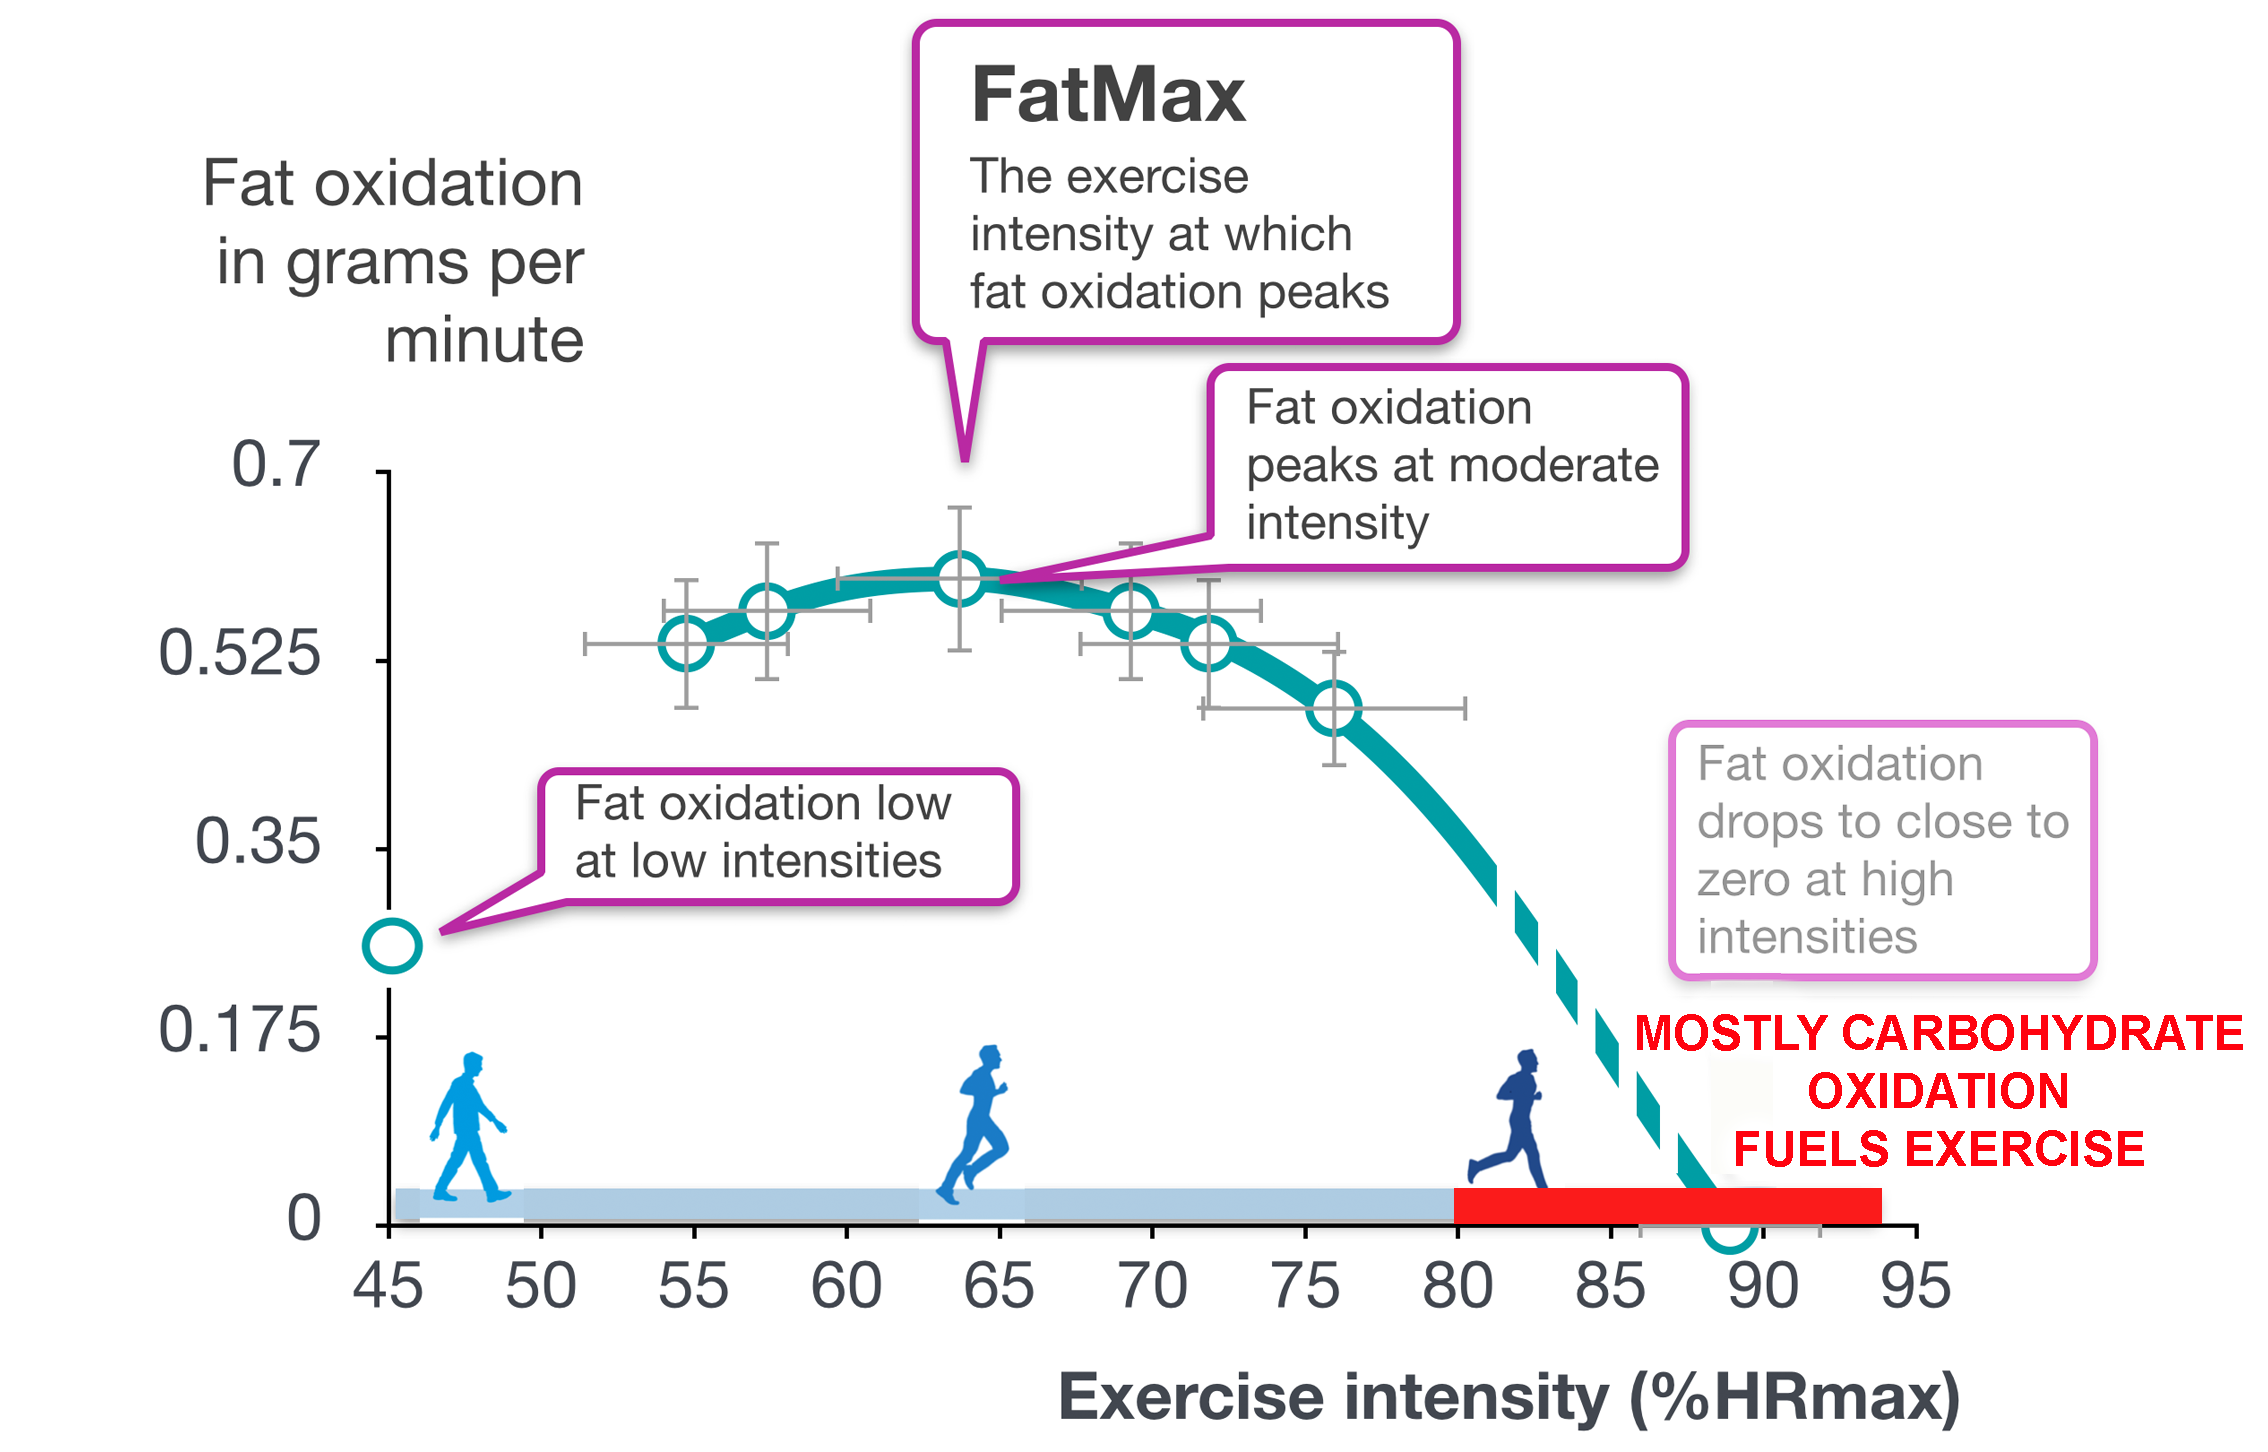 Fat vs. carbohydrate burning at different exercise intensities